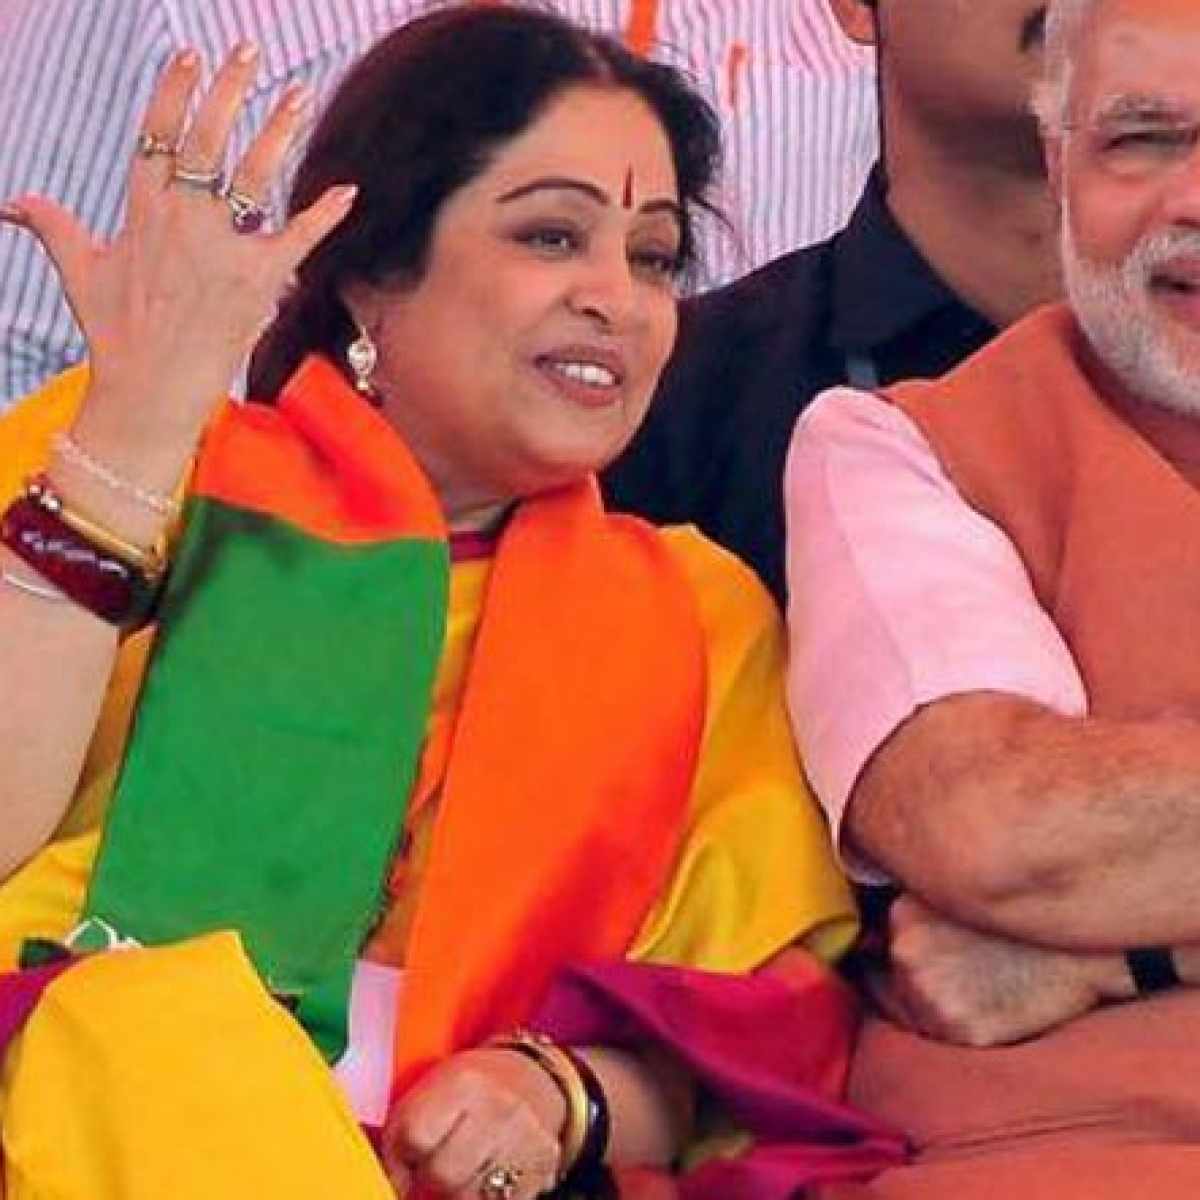 'Learn difference between allocation and donation': Kirron Kher called out for tweet about 'donating' Rs 1 crore from MPLADS